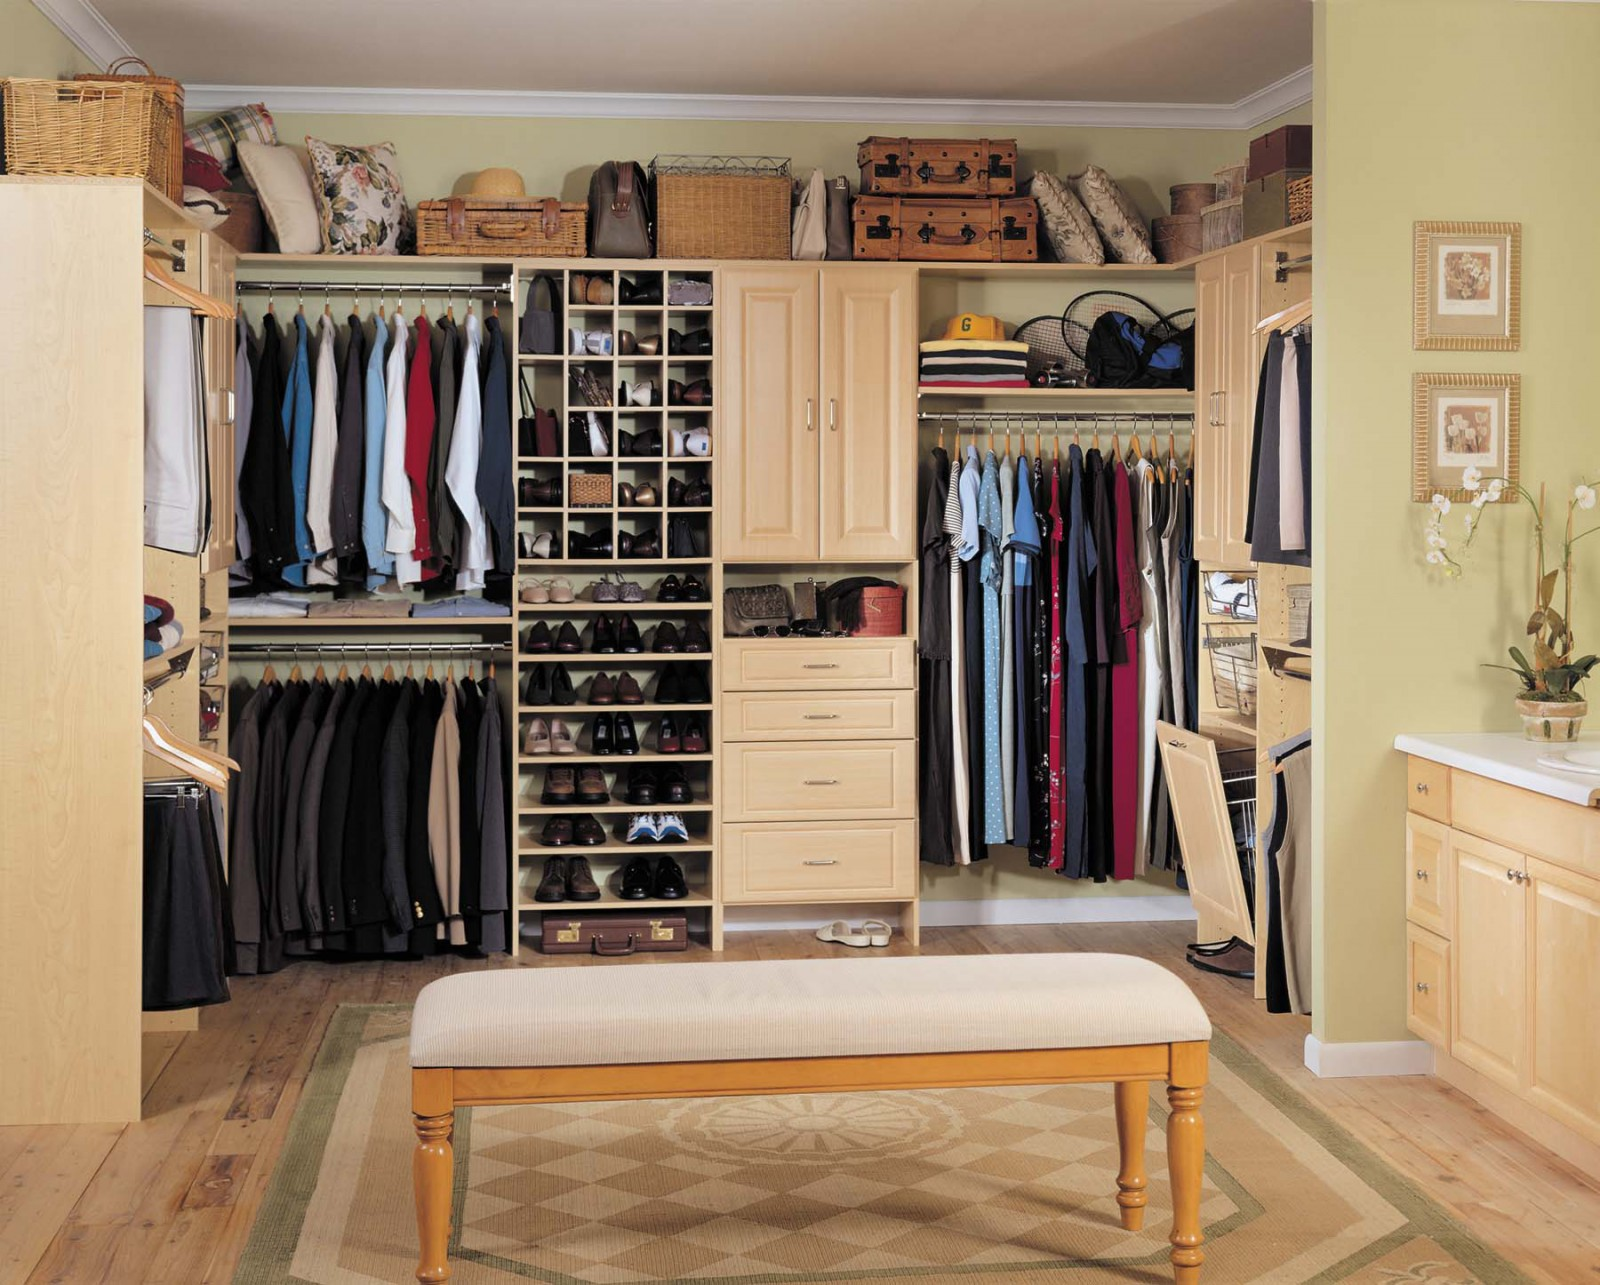 Advanced Closet Systems | Custom Shelving And Storage Systems